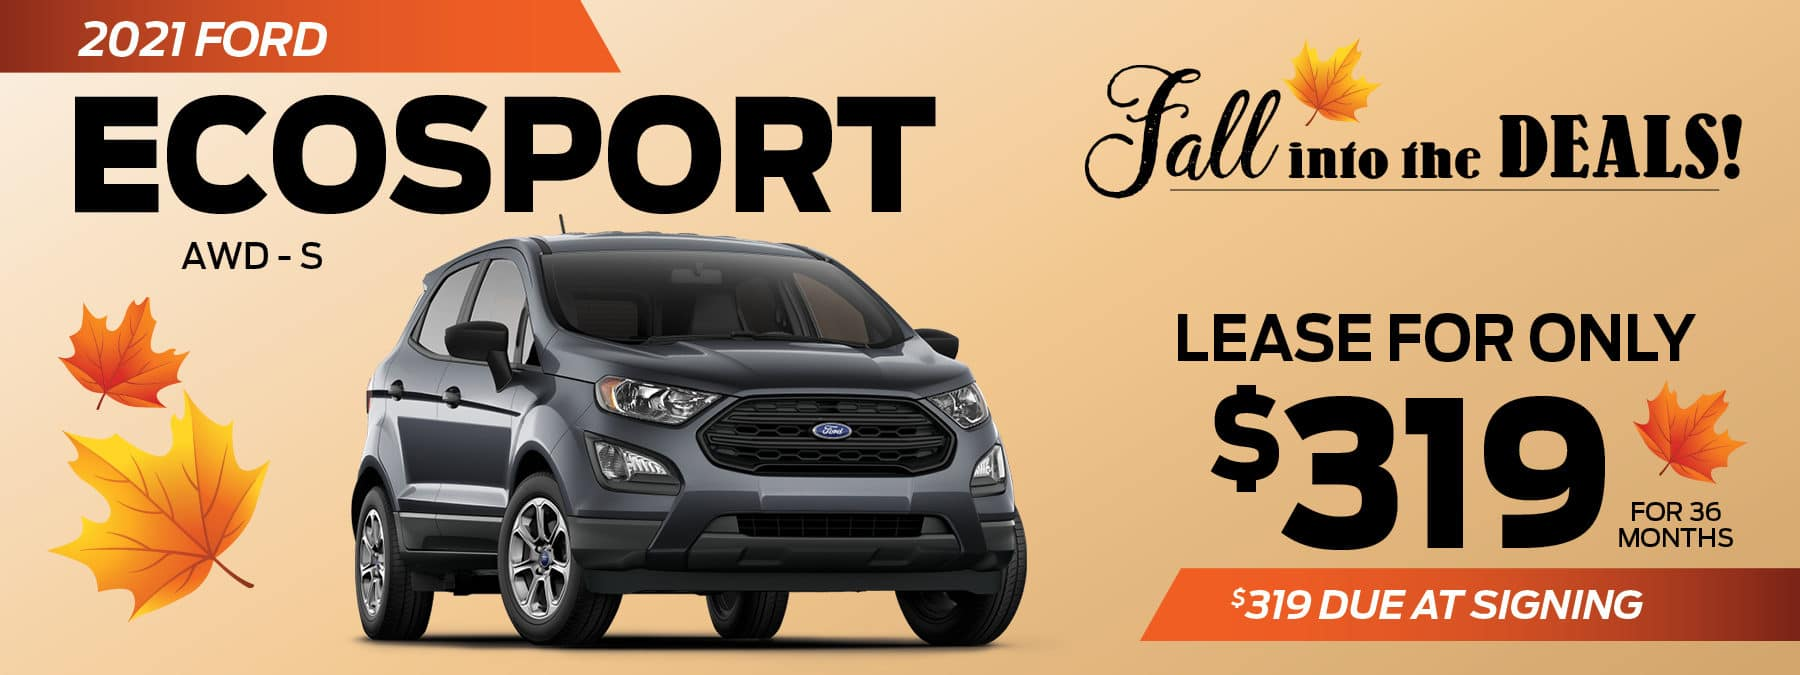 2021 Ford Ecosport Lease Offer at Smail Ford in Greensburg PA